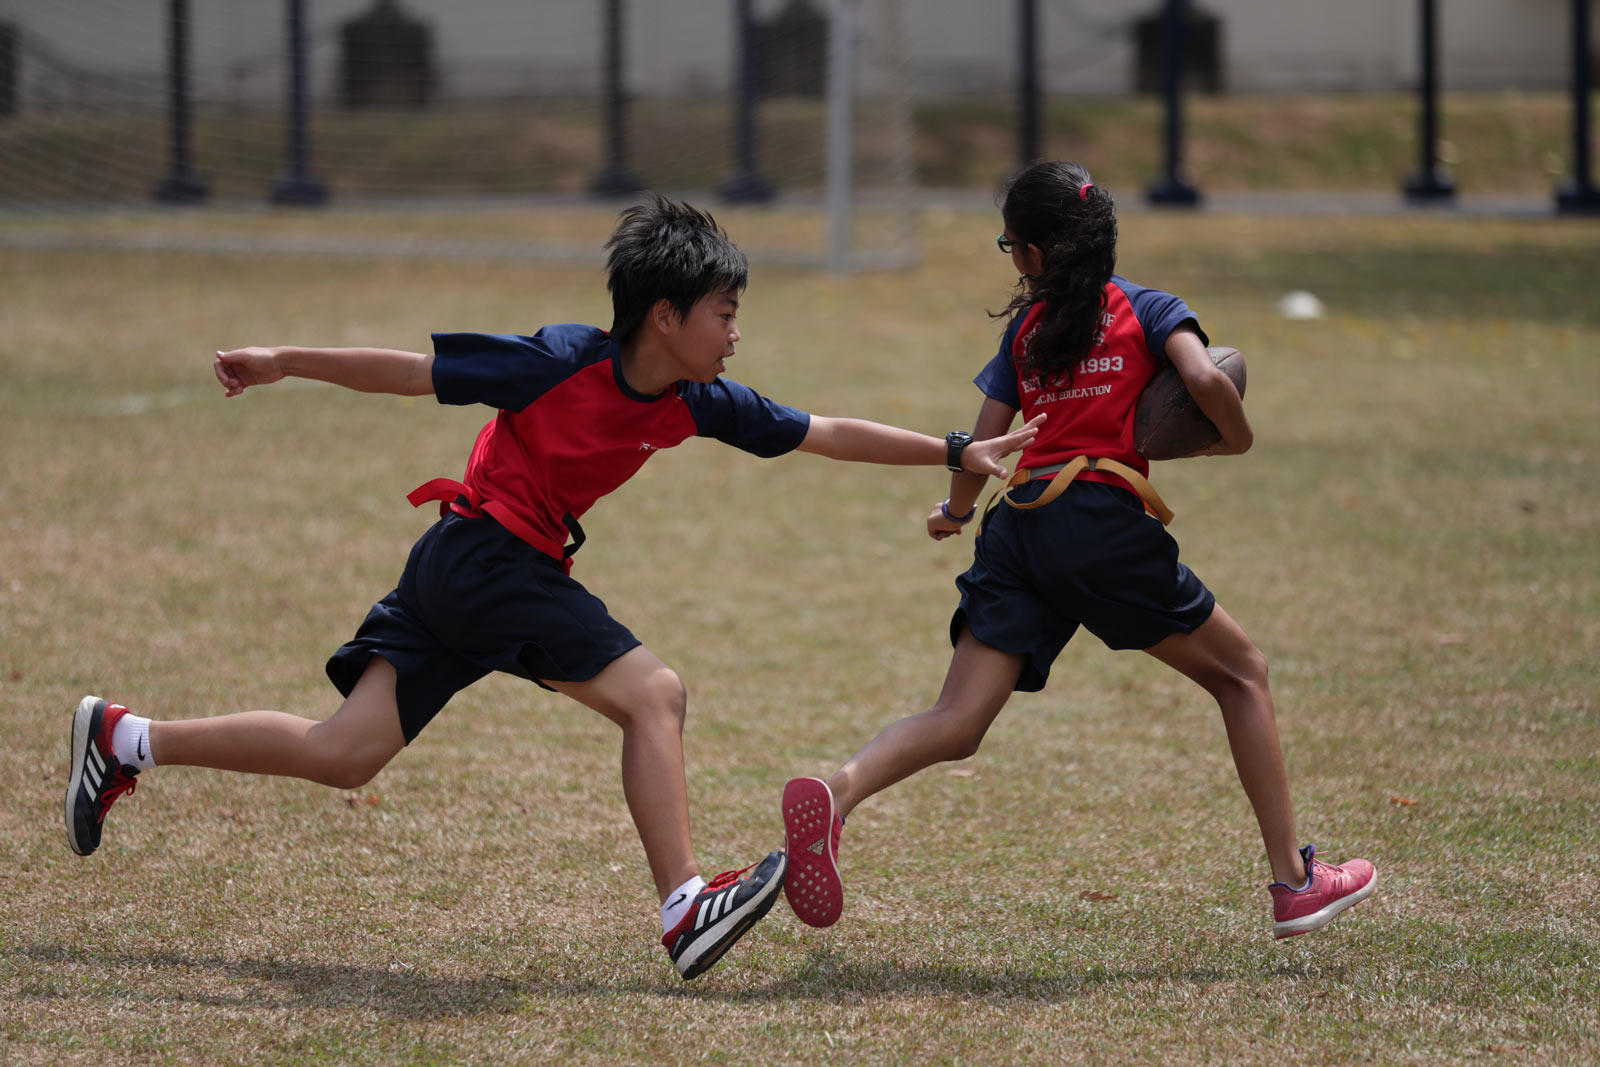 ICS Singapore middle school students playing flag football